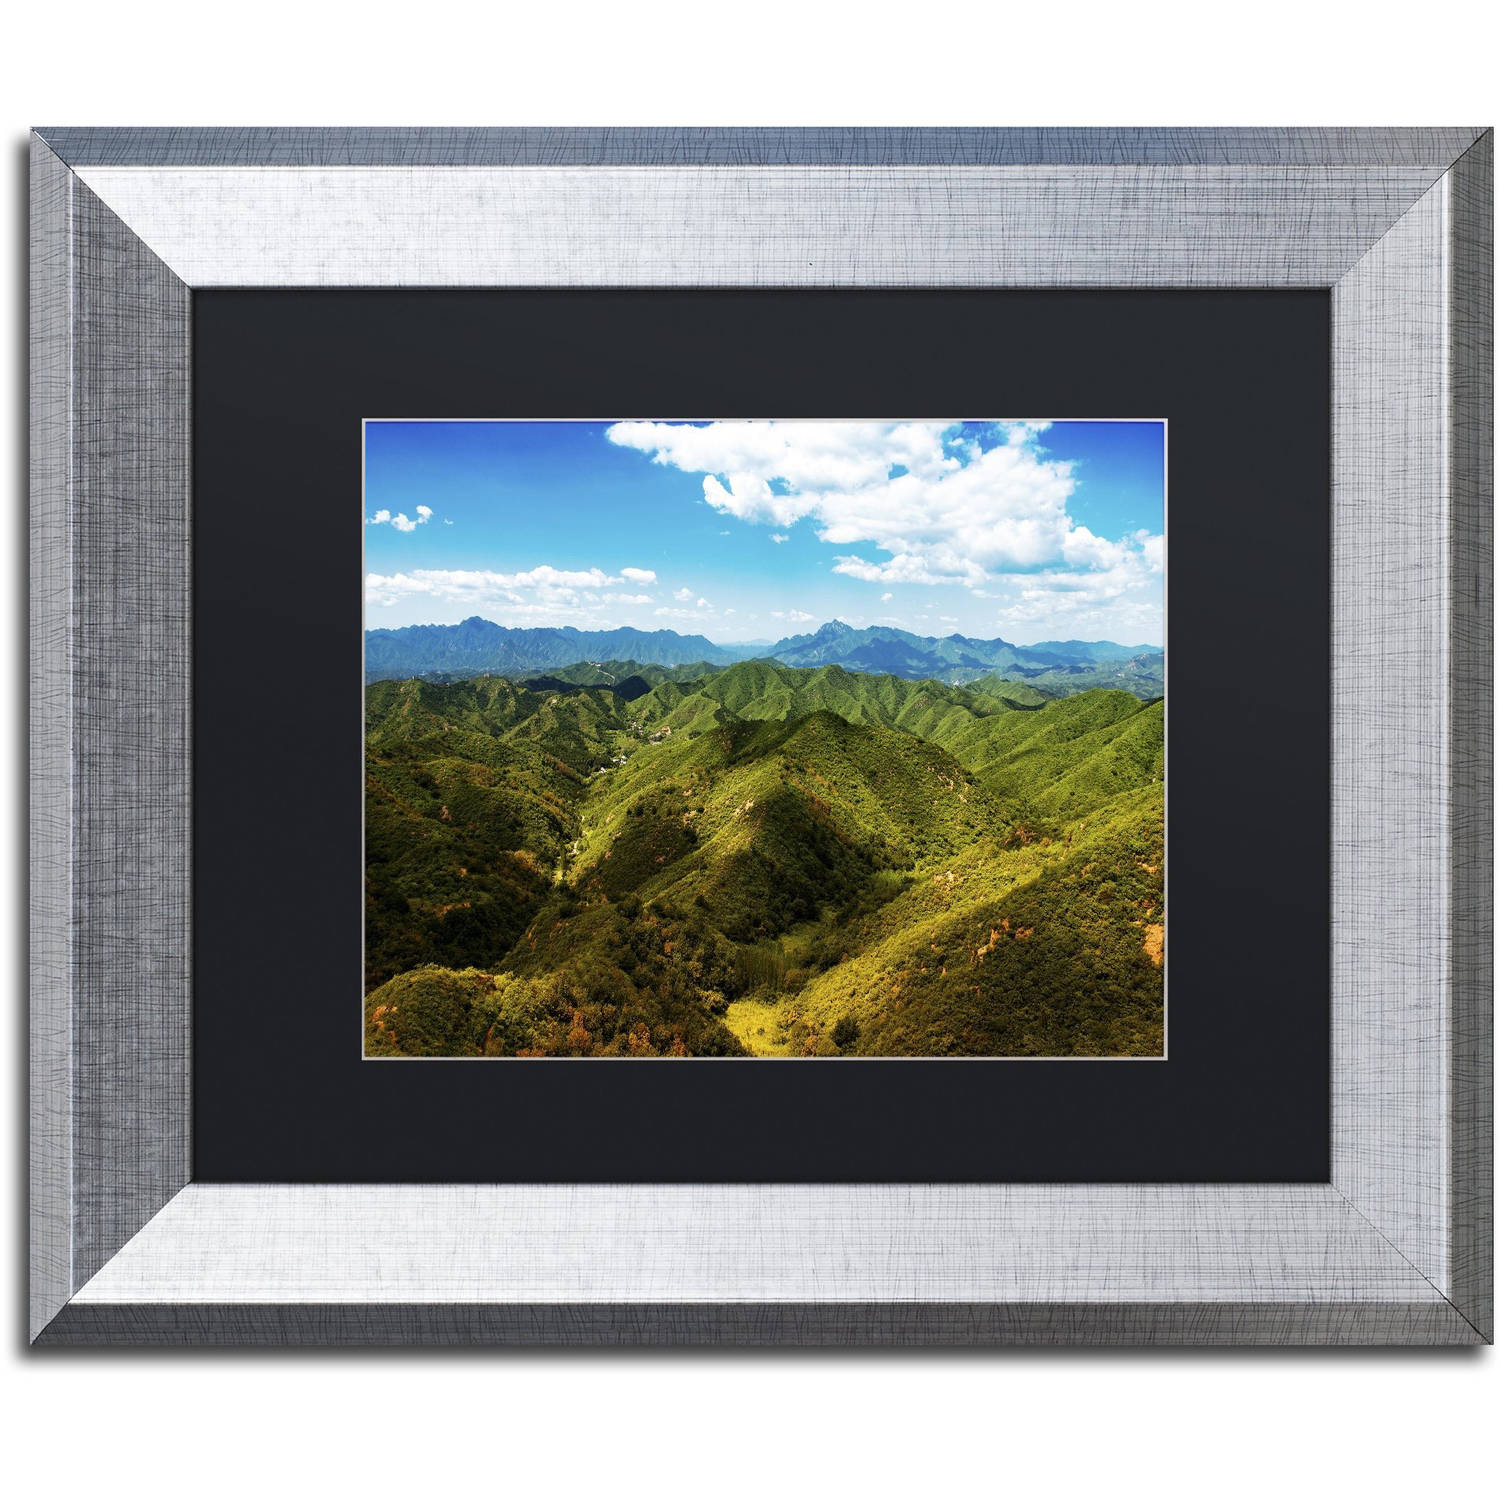 "Trademark Fine Art ""Great Wall XII"" Canvas Art by Philippe Hugonnard, Black Matte, Silver Frame"